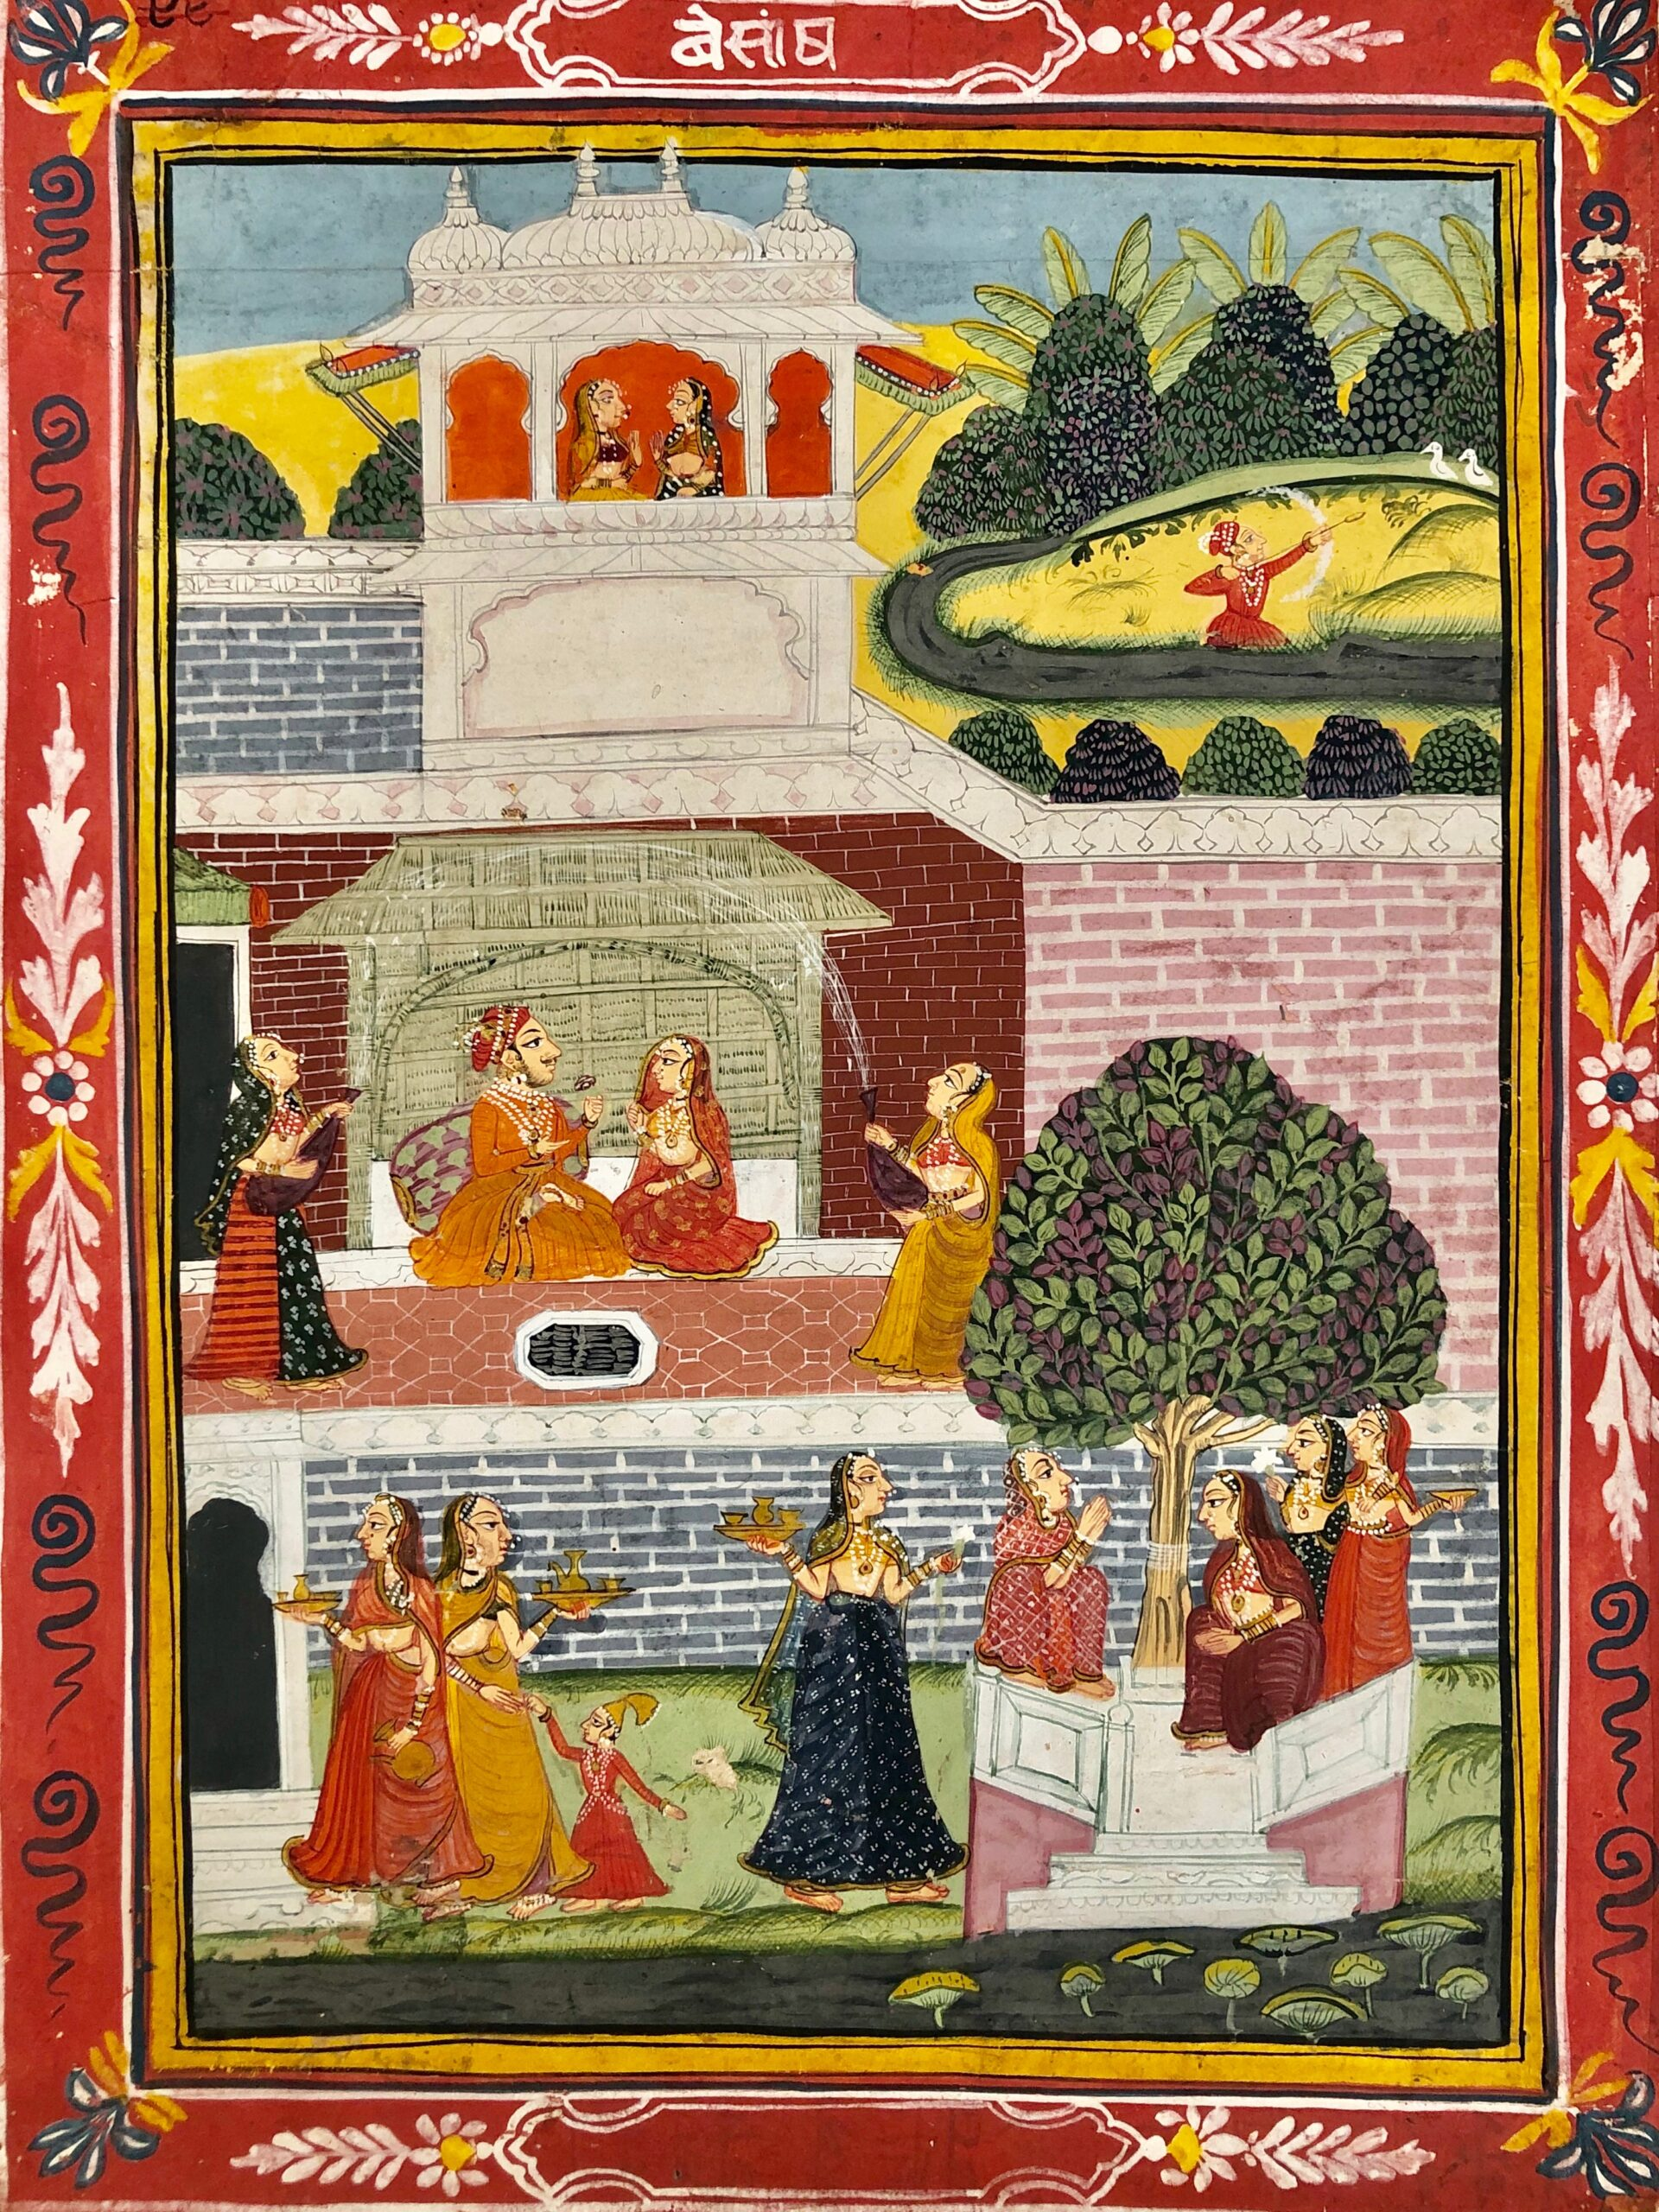 Mewar, Rajasthan, India